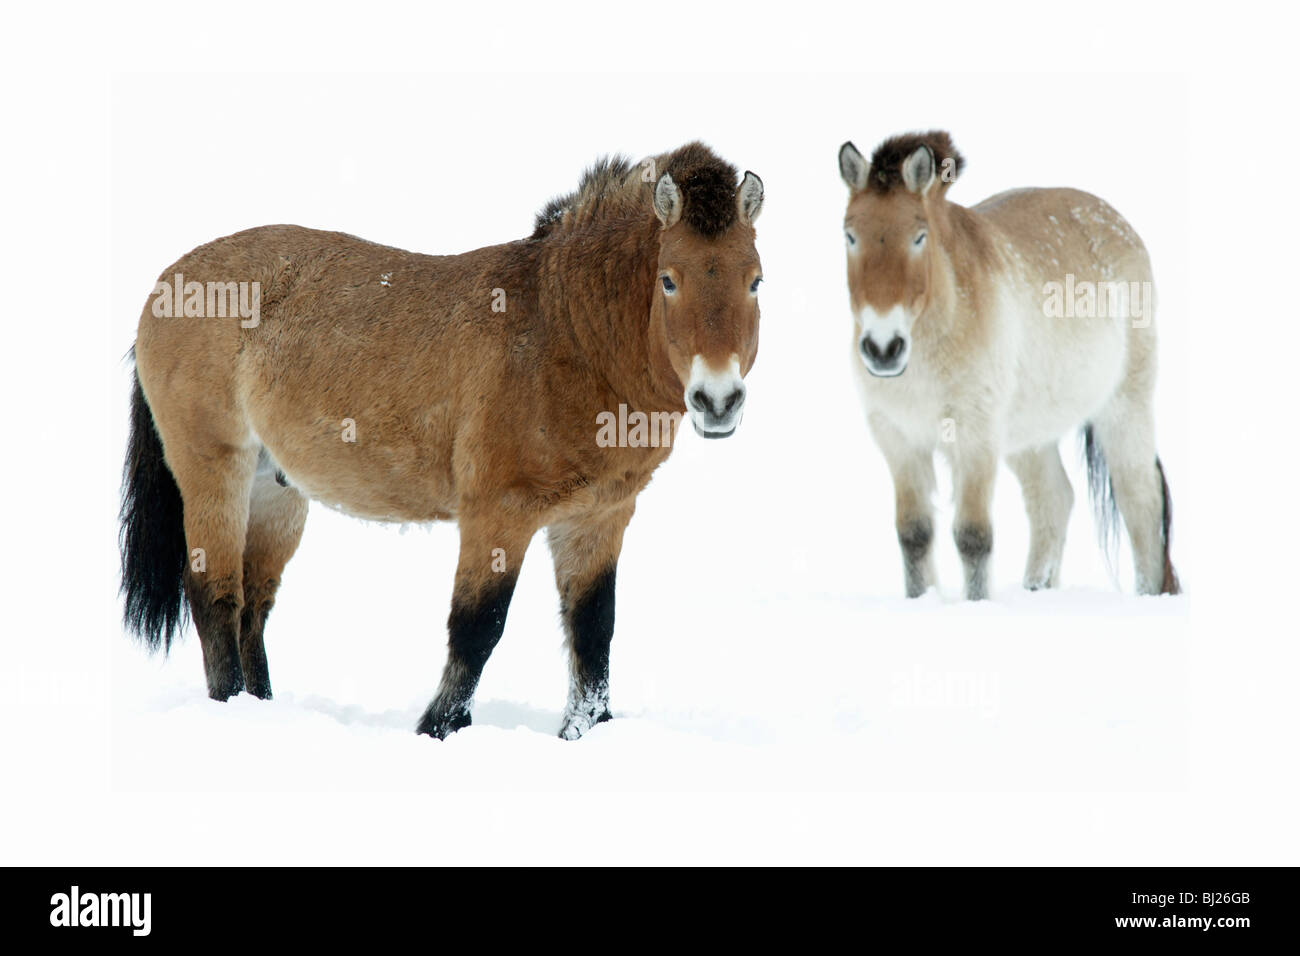 Presewalski's Horse, stallion and mare on snow covered field, Germany - Stock Image